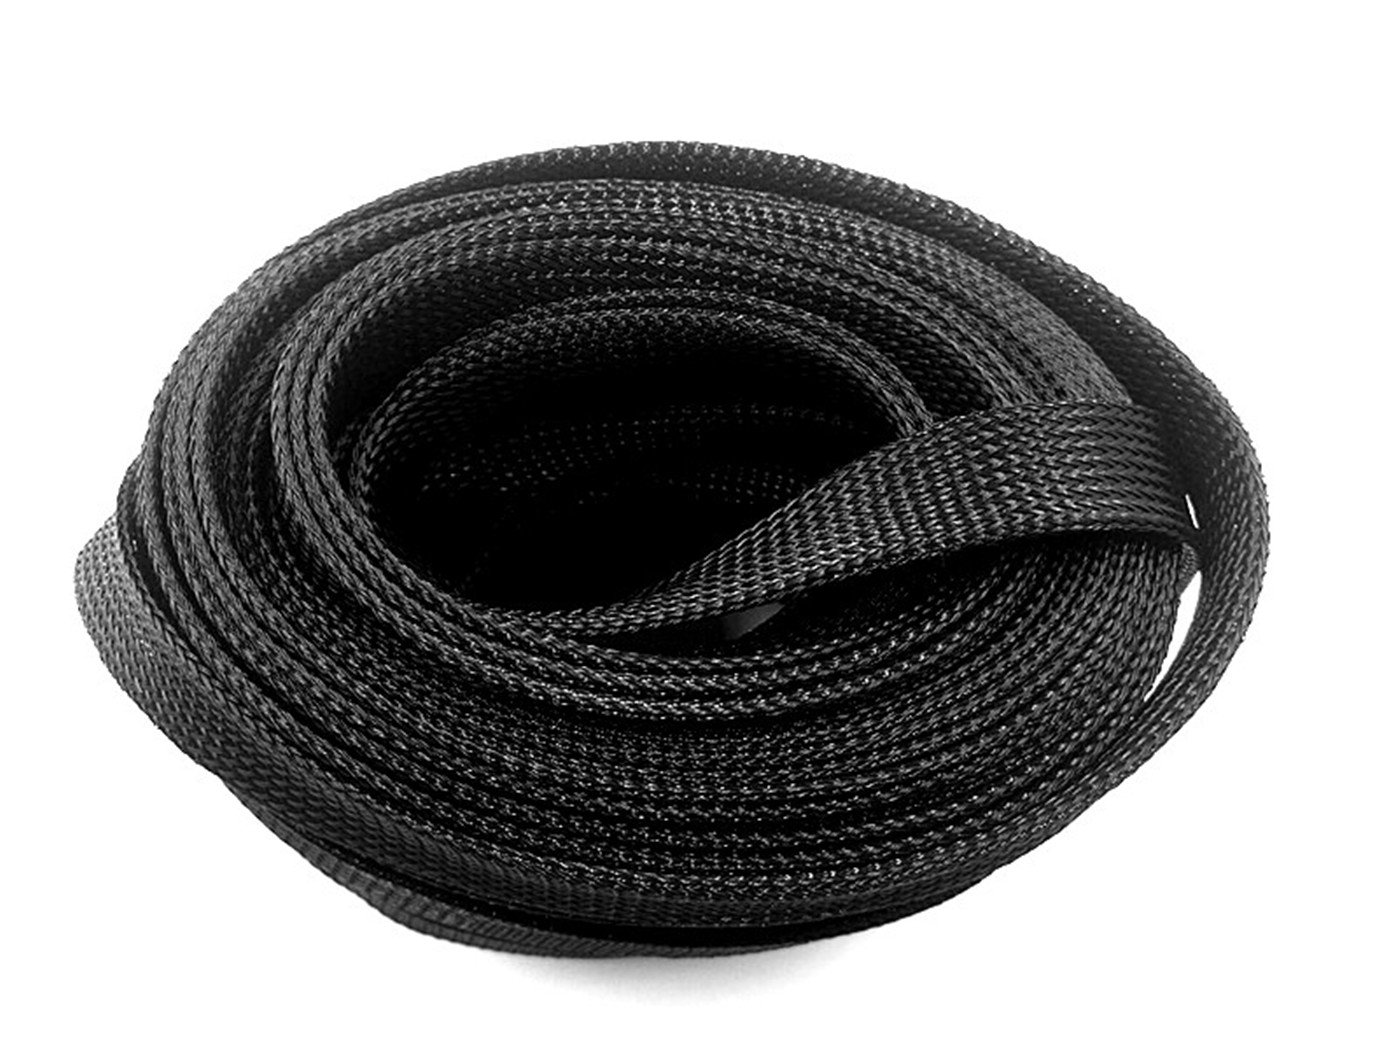 Wang-Data 50ft-1 1/2'' PET Expandable Braided Sleeving –Black –cable management sleeve cord organizer for wrap & protect cables